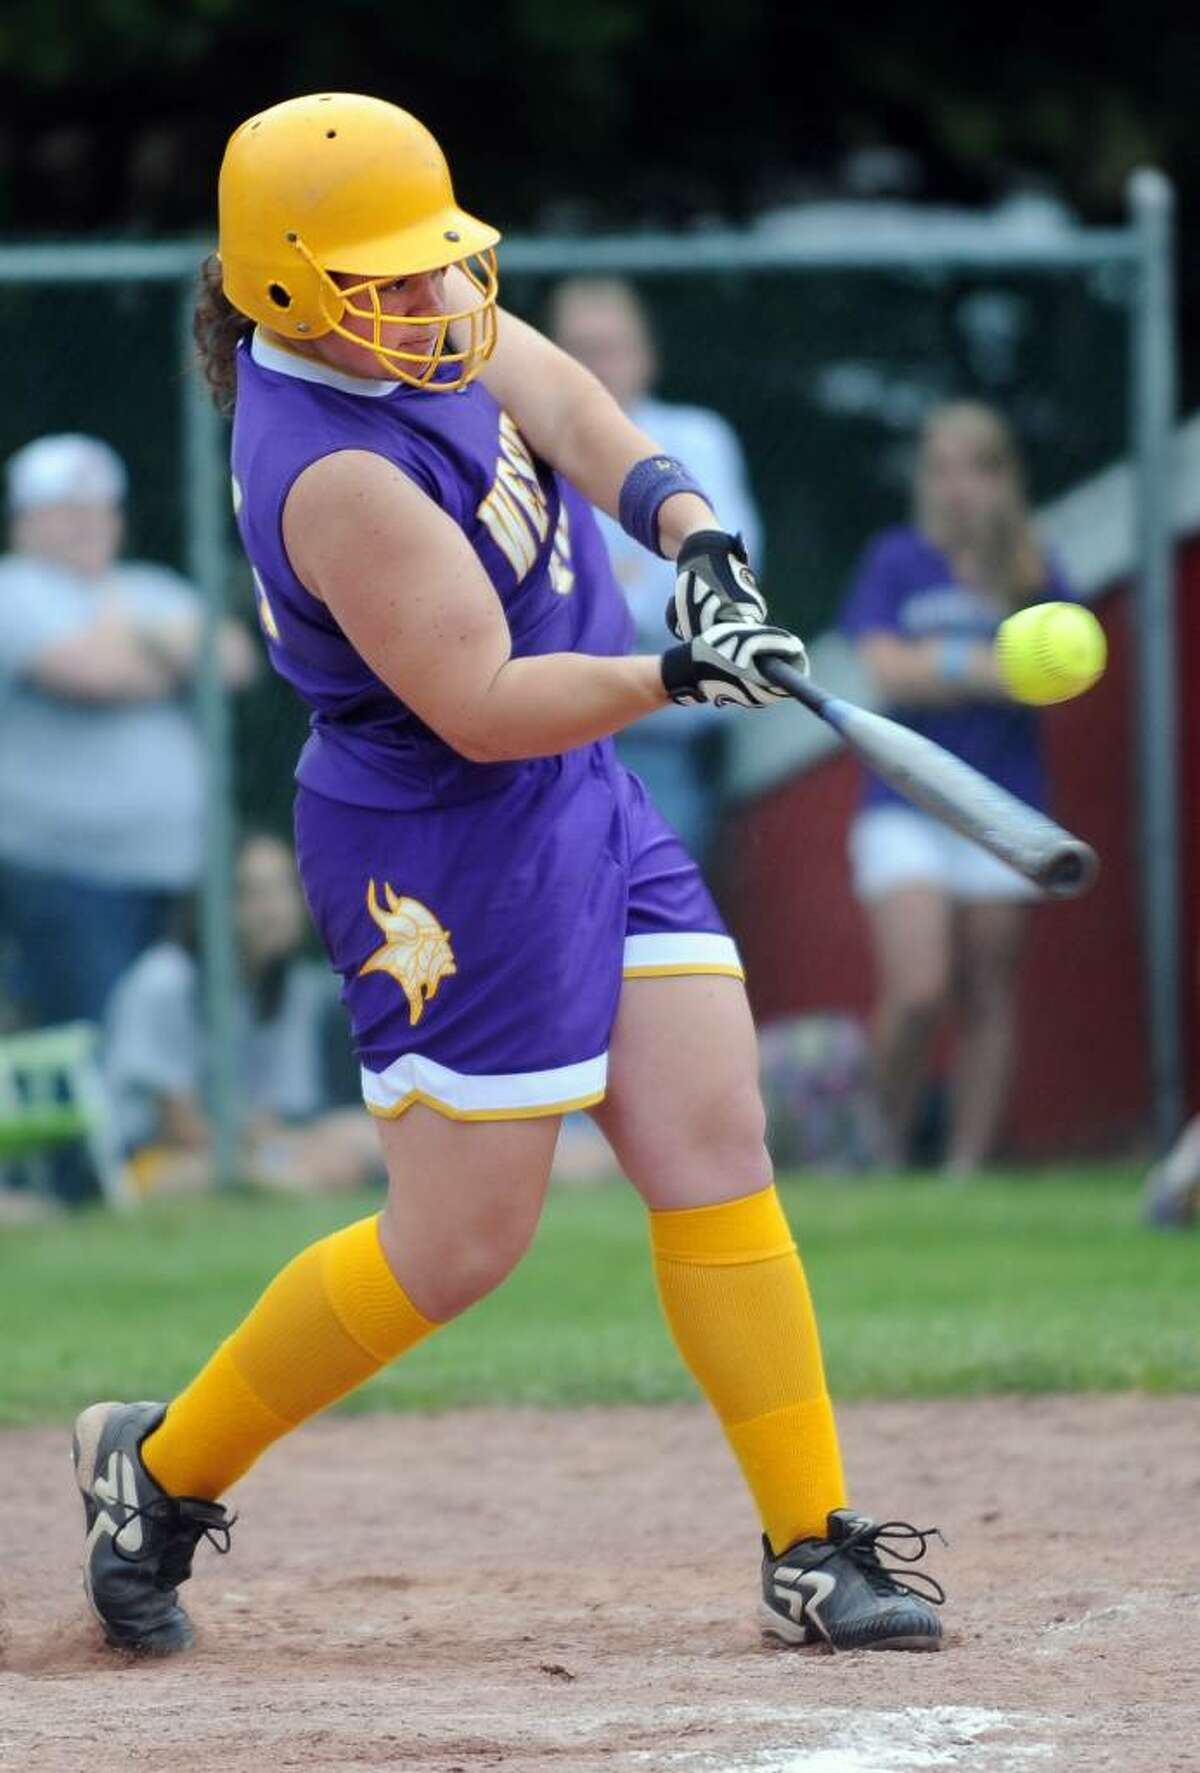 Westhill's Jennifer Joseph gets a hit during the FCIAC Softball Championship game against Trumbull Thursday May 27, 2010 at Sacred Heart University in Fairfield.